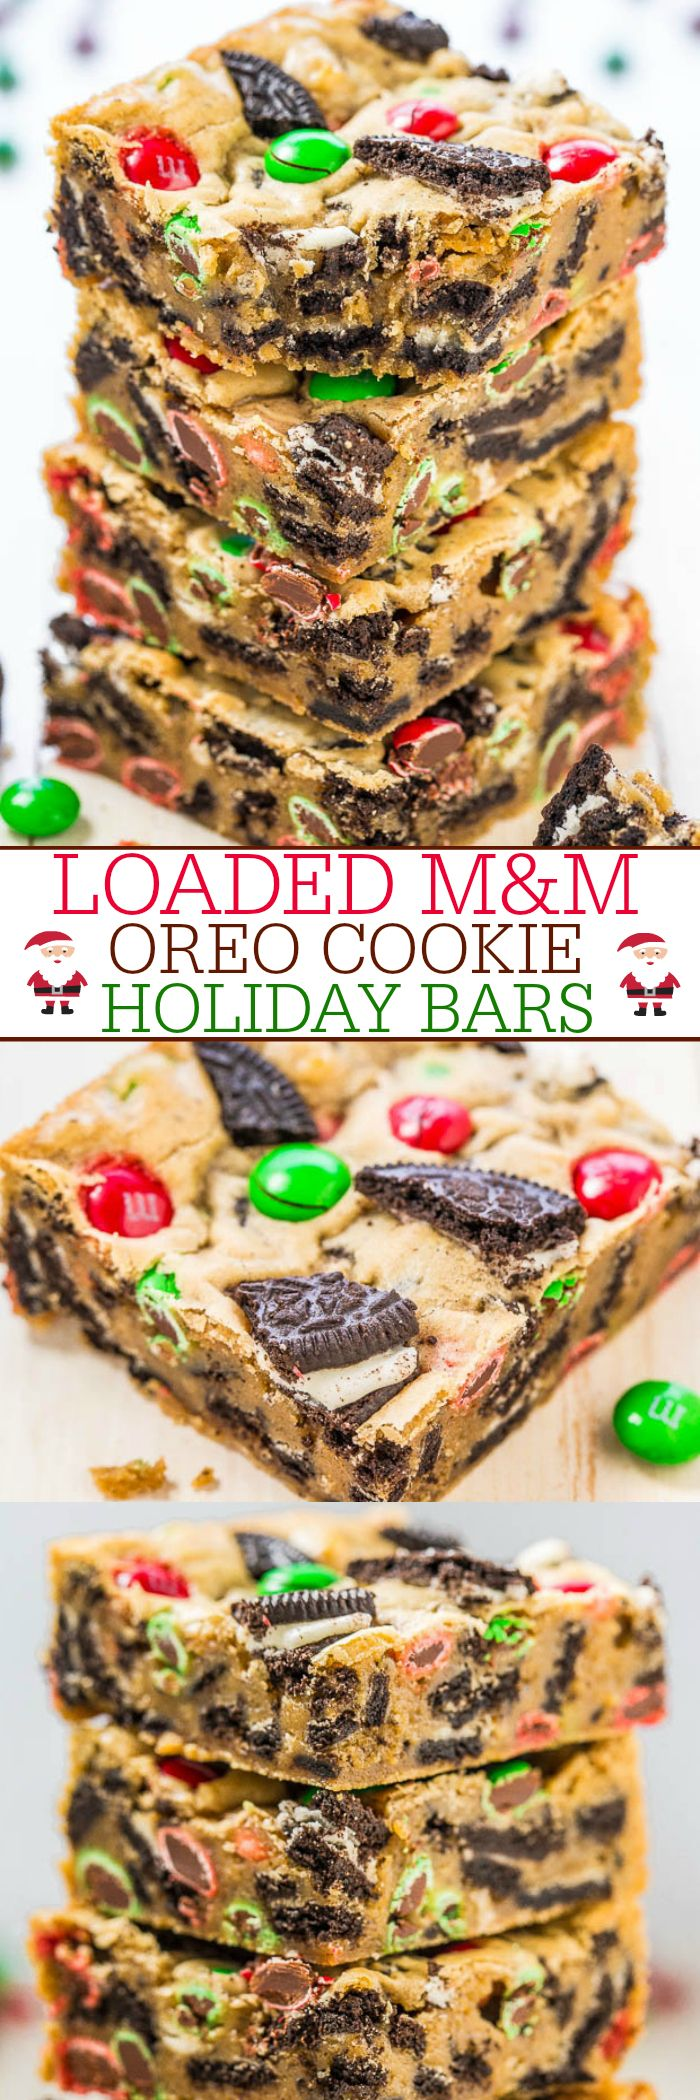 Quick and easy holiday treat recipes